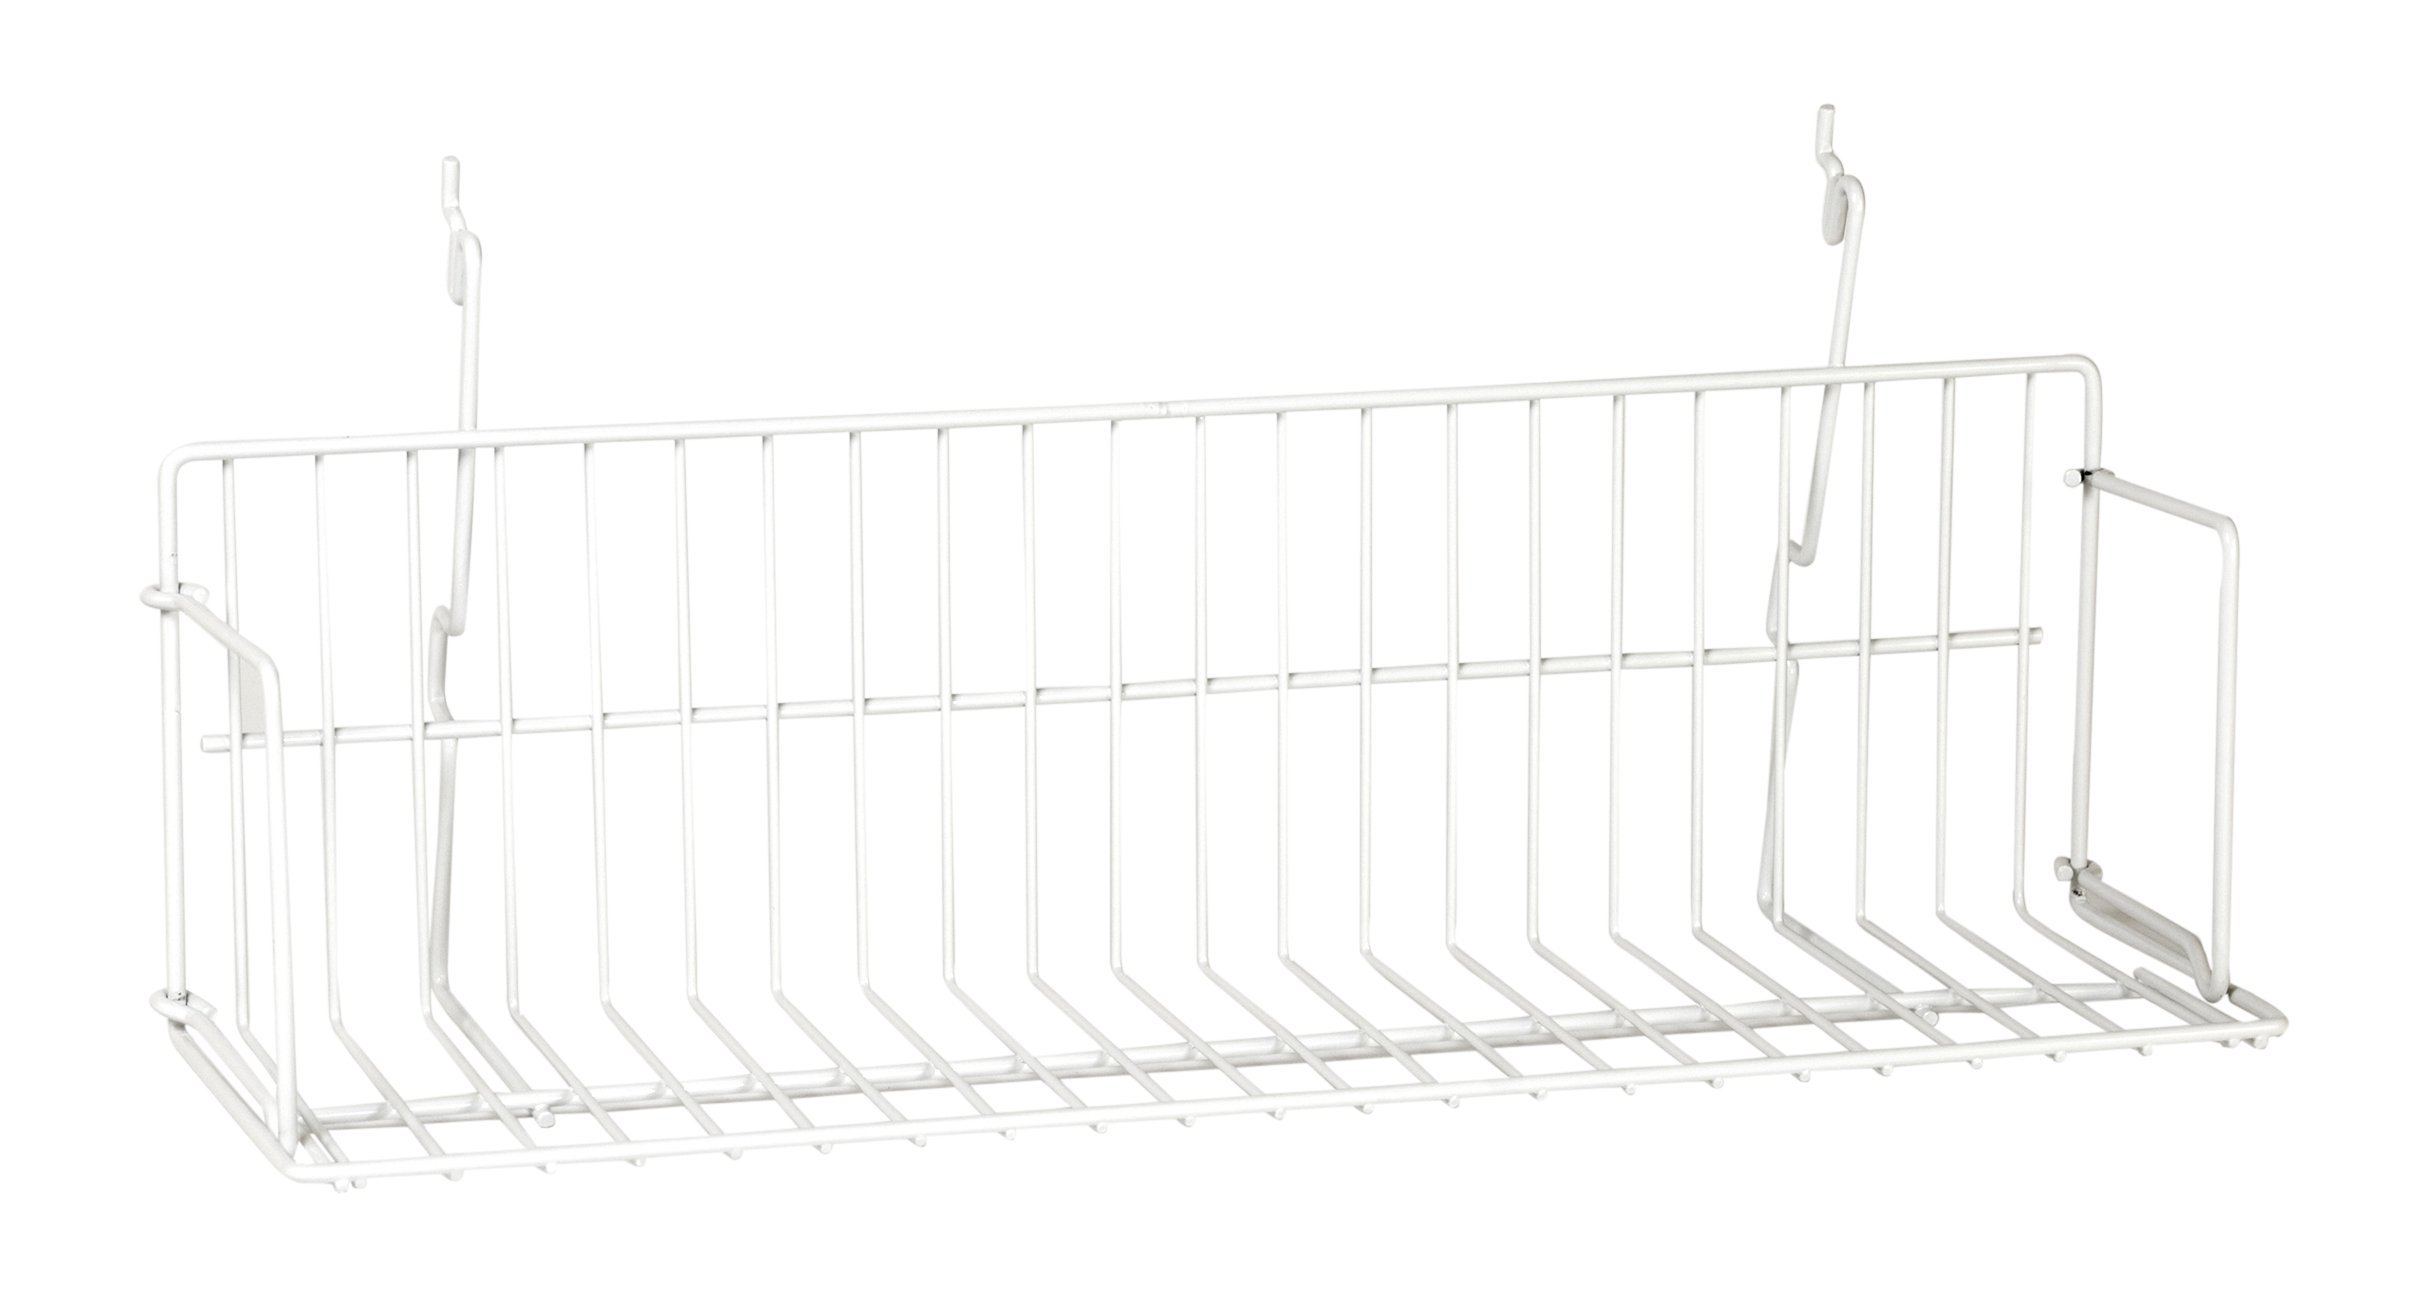 KC Store Fixtures A03051 Video Shelf Fits Slatwall, Grid, Pegboard, 23'' W, White (Pack of 6)